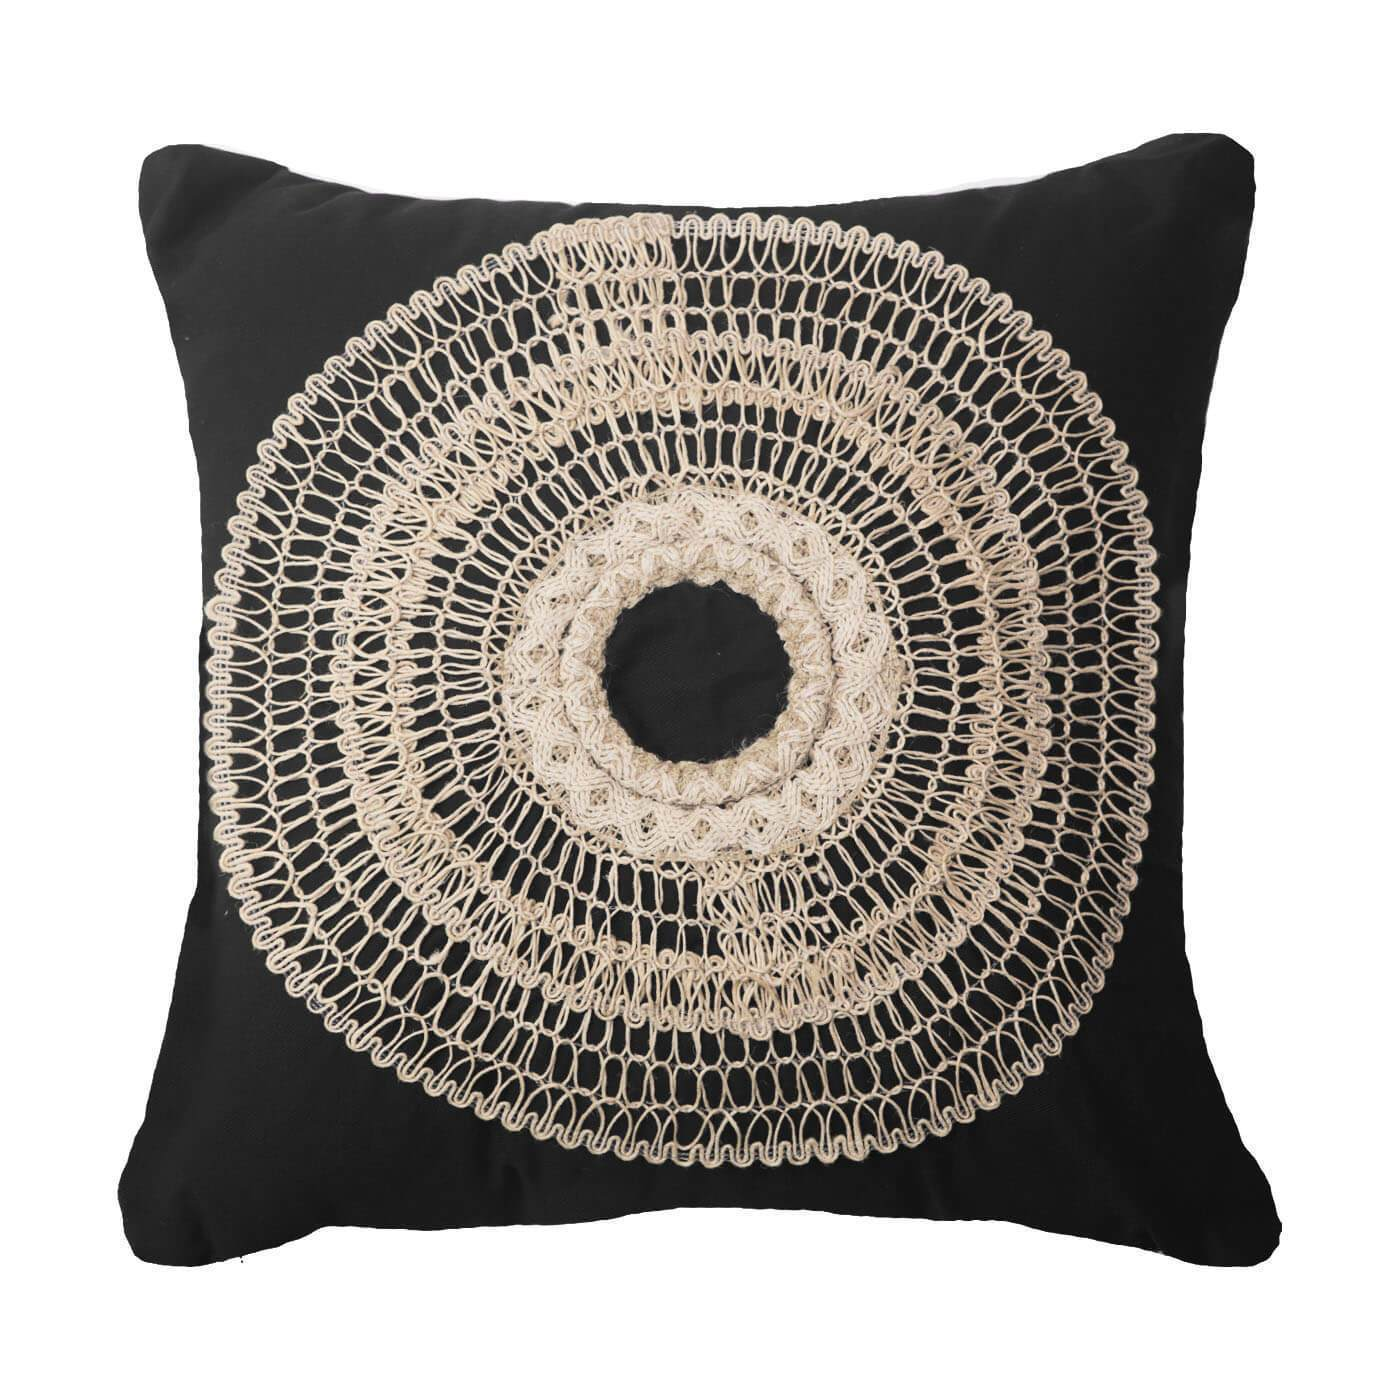 Bandhini Homewear Design Medium Cushion Black / Primitive / 20 x 20 African Armour Black Medium Cushion 50 x 50 cm